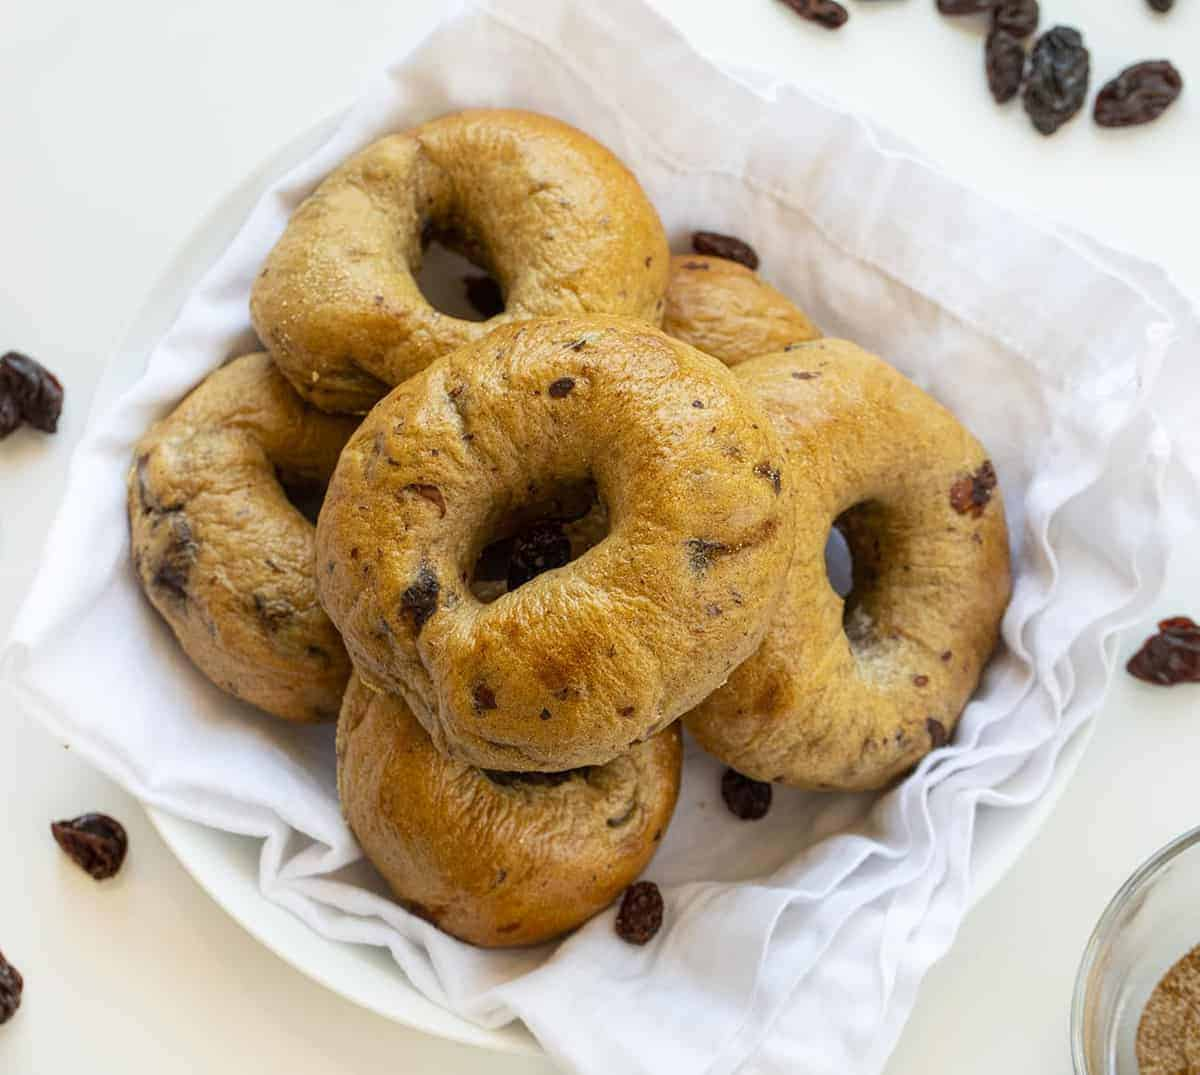 Overhead Image of Cinnamon Raisin Bagels in White Bowl with Raisins around it